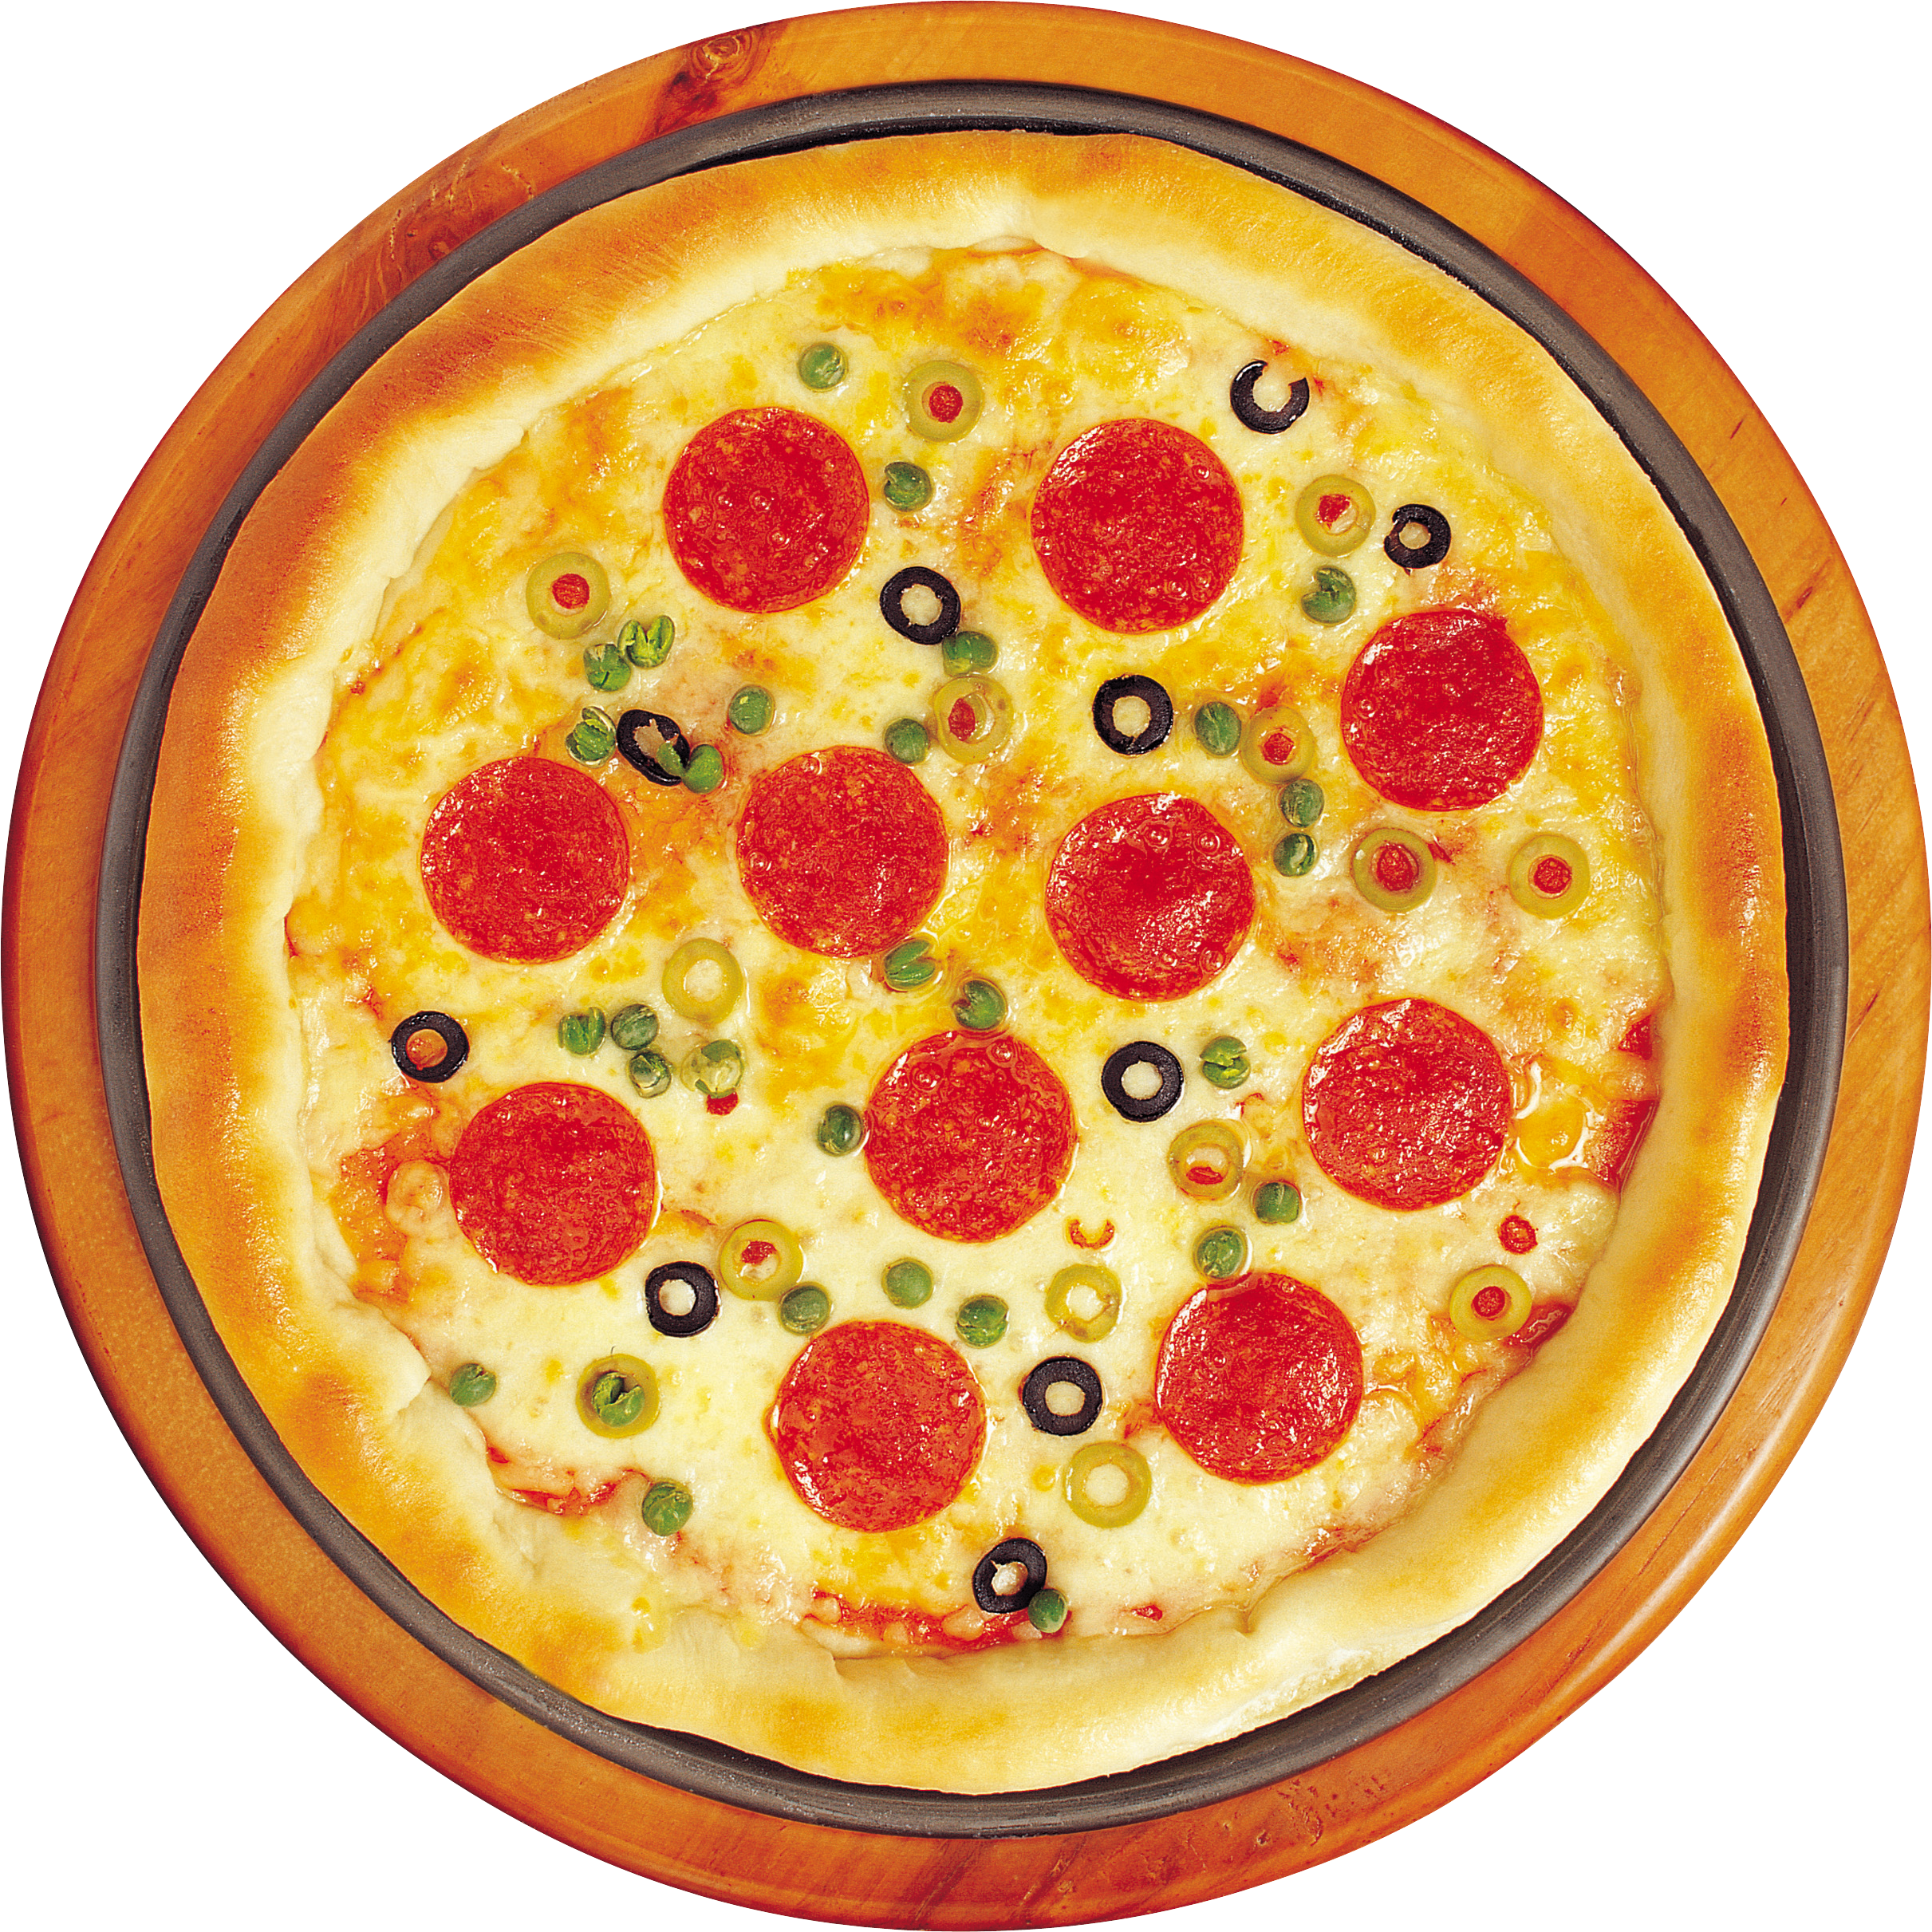 Drawn pizza Pizza Download pizza%20clipart Images Clipart